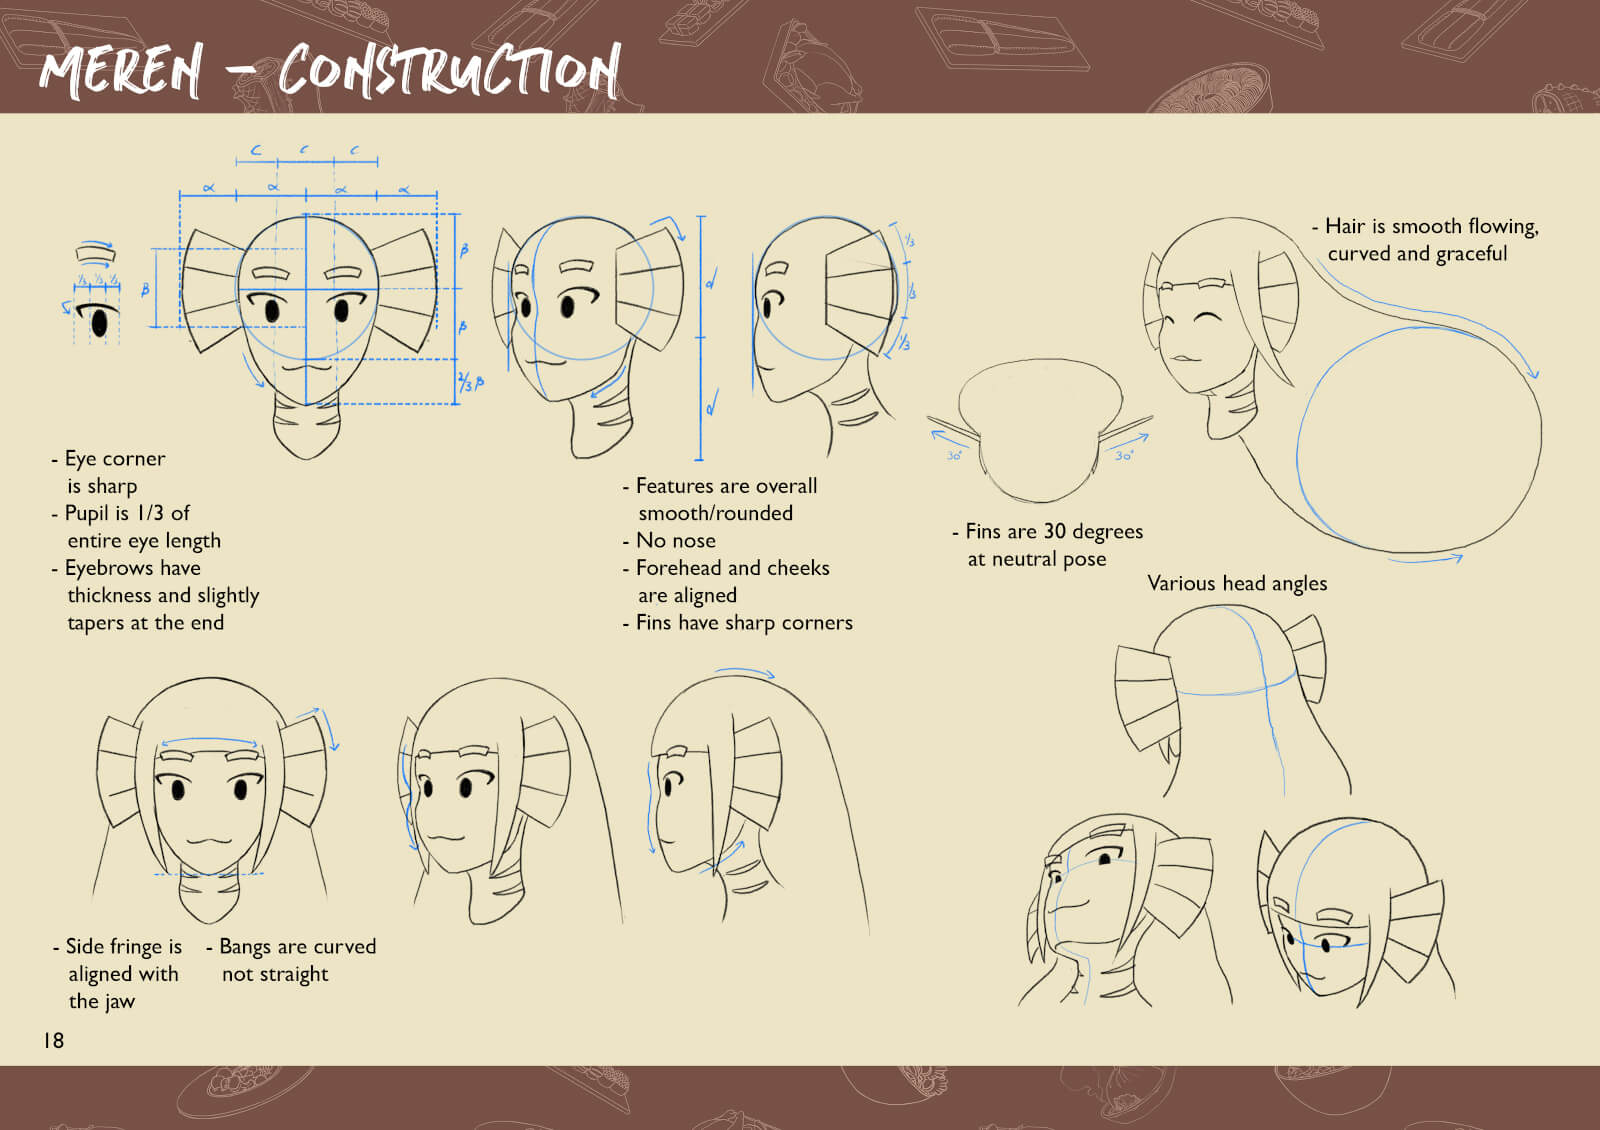 Sketches of mermaid character's head